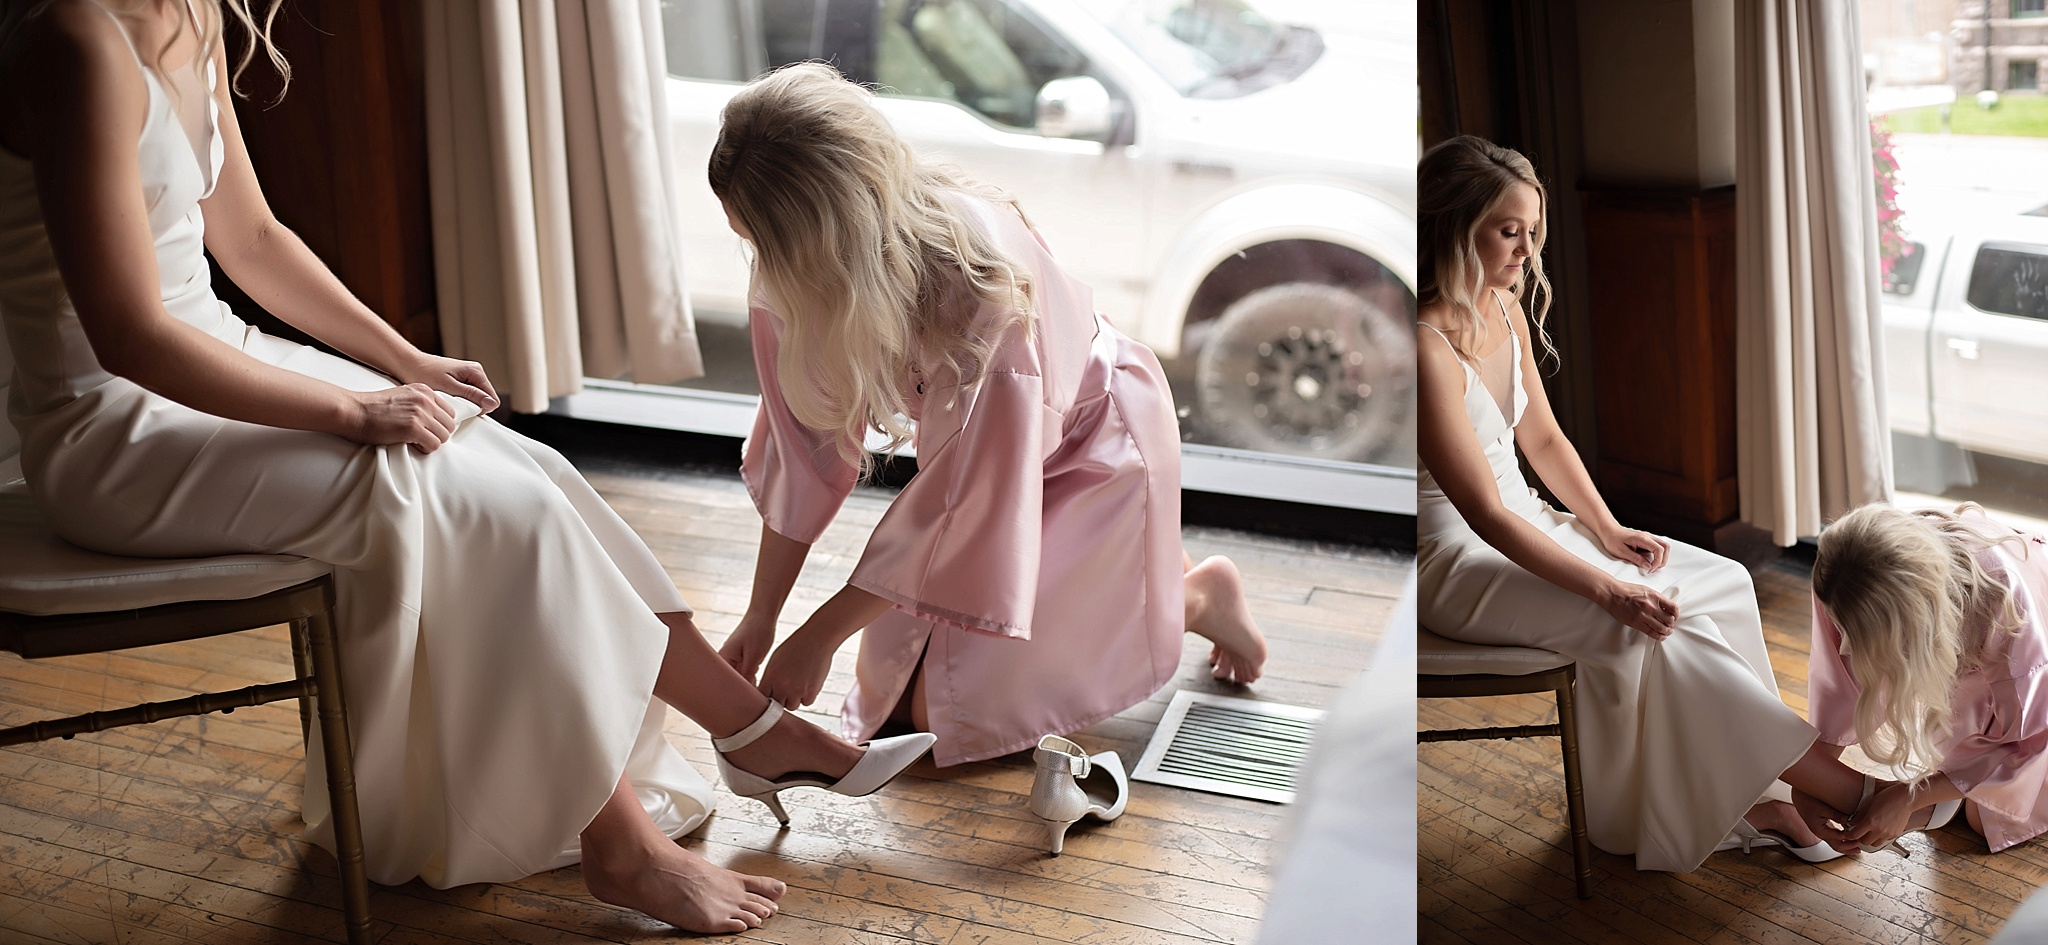 maid of honor helps bride put her shoes on